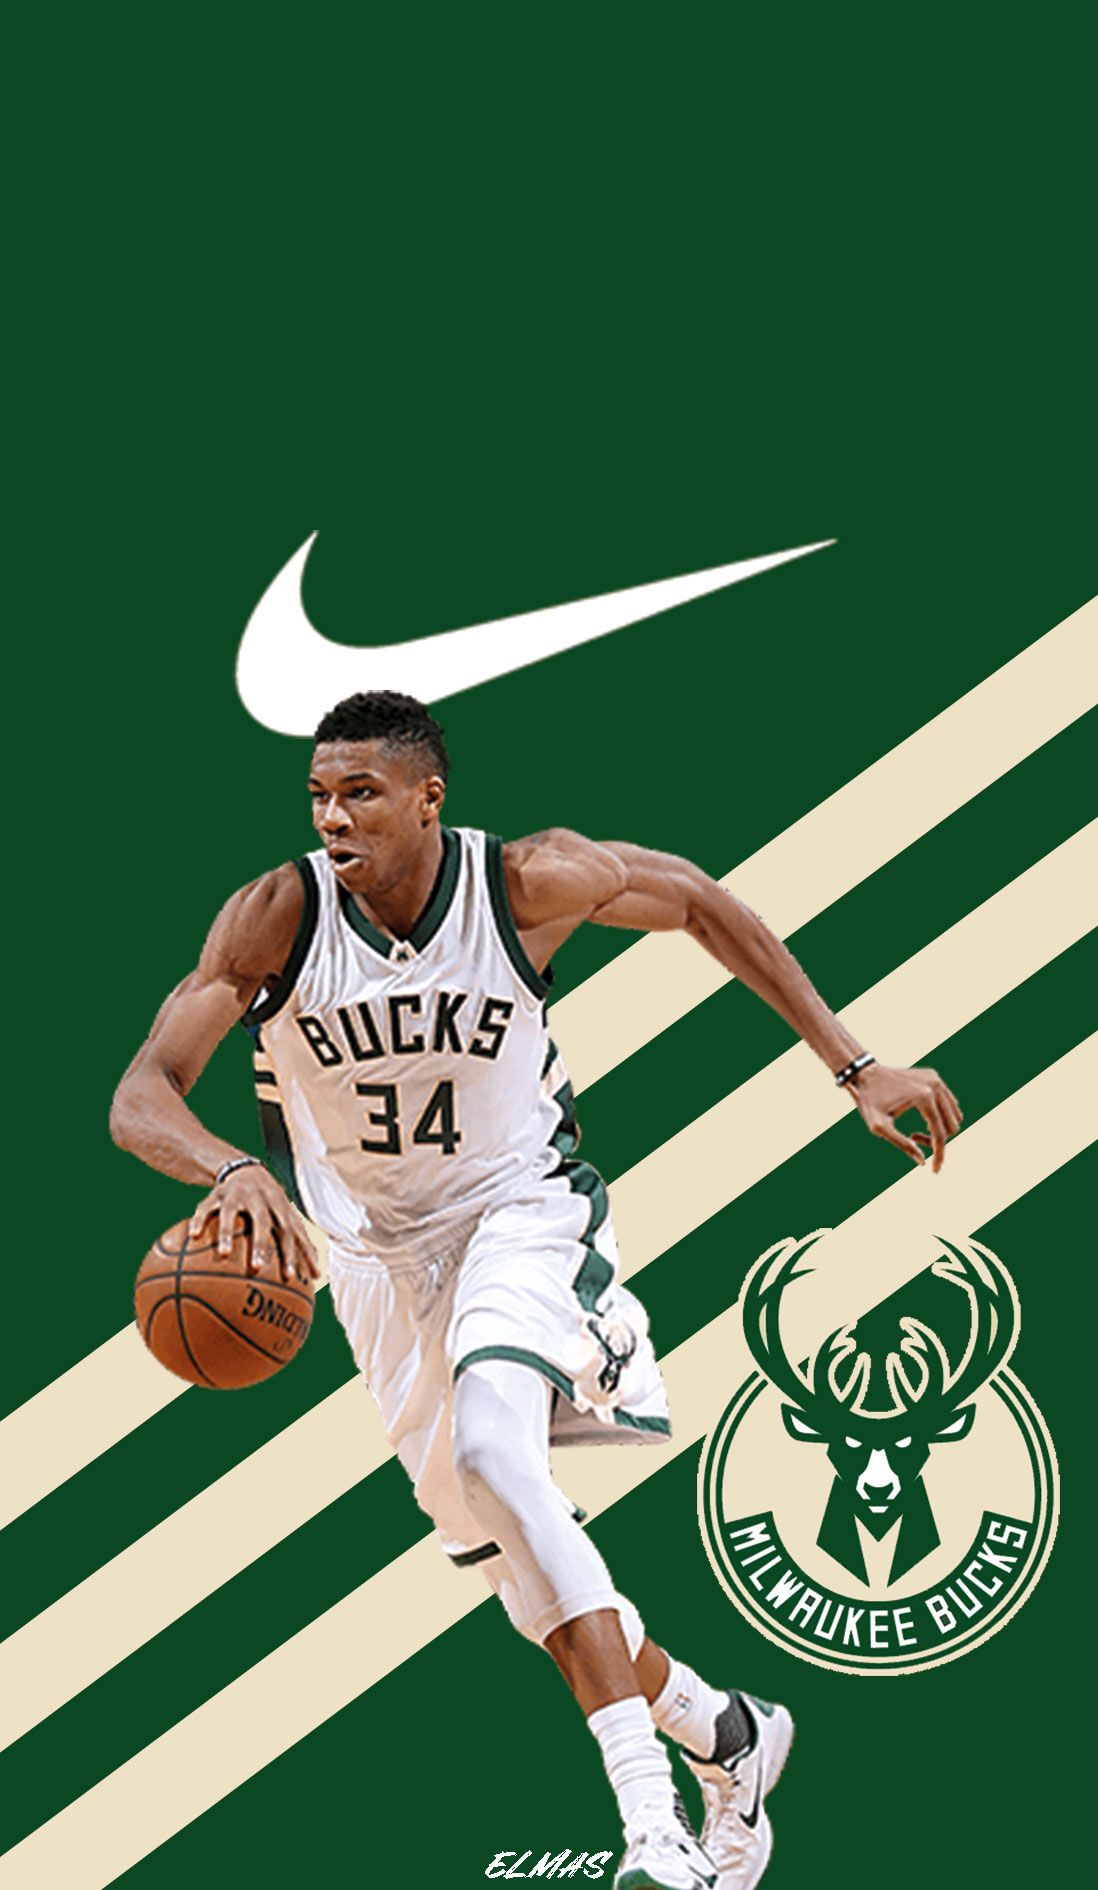 Pin By Miguel Santiago On Cases Giannis Antetokounmpo Wallpaper Nba Wallpapers Basketball Wallpaper